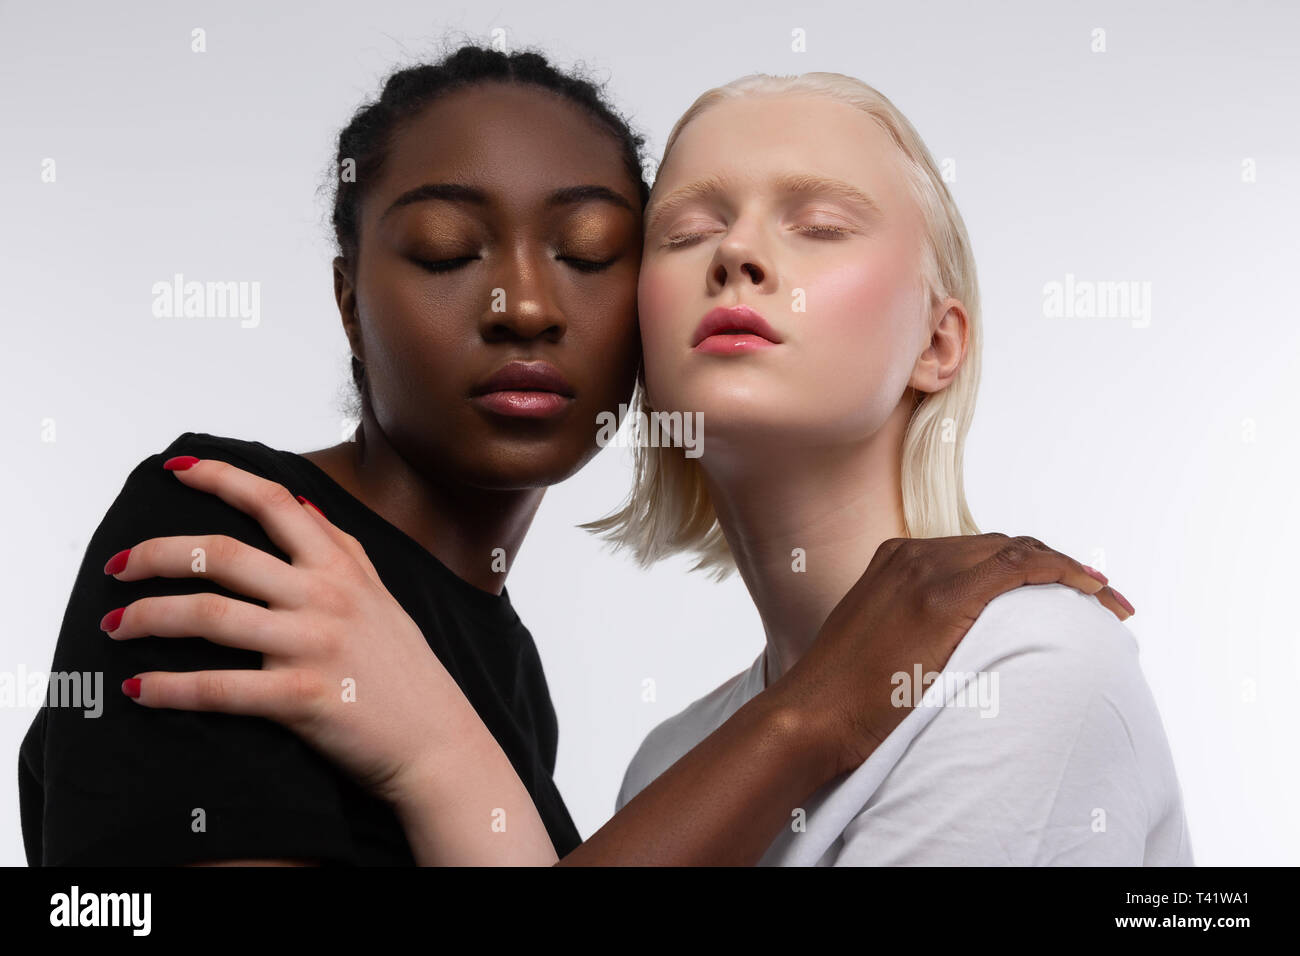 Diversity and anti-racism. Two good-looking young models posing for article about diversity and anti-racism - Stock Image